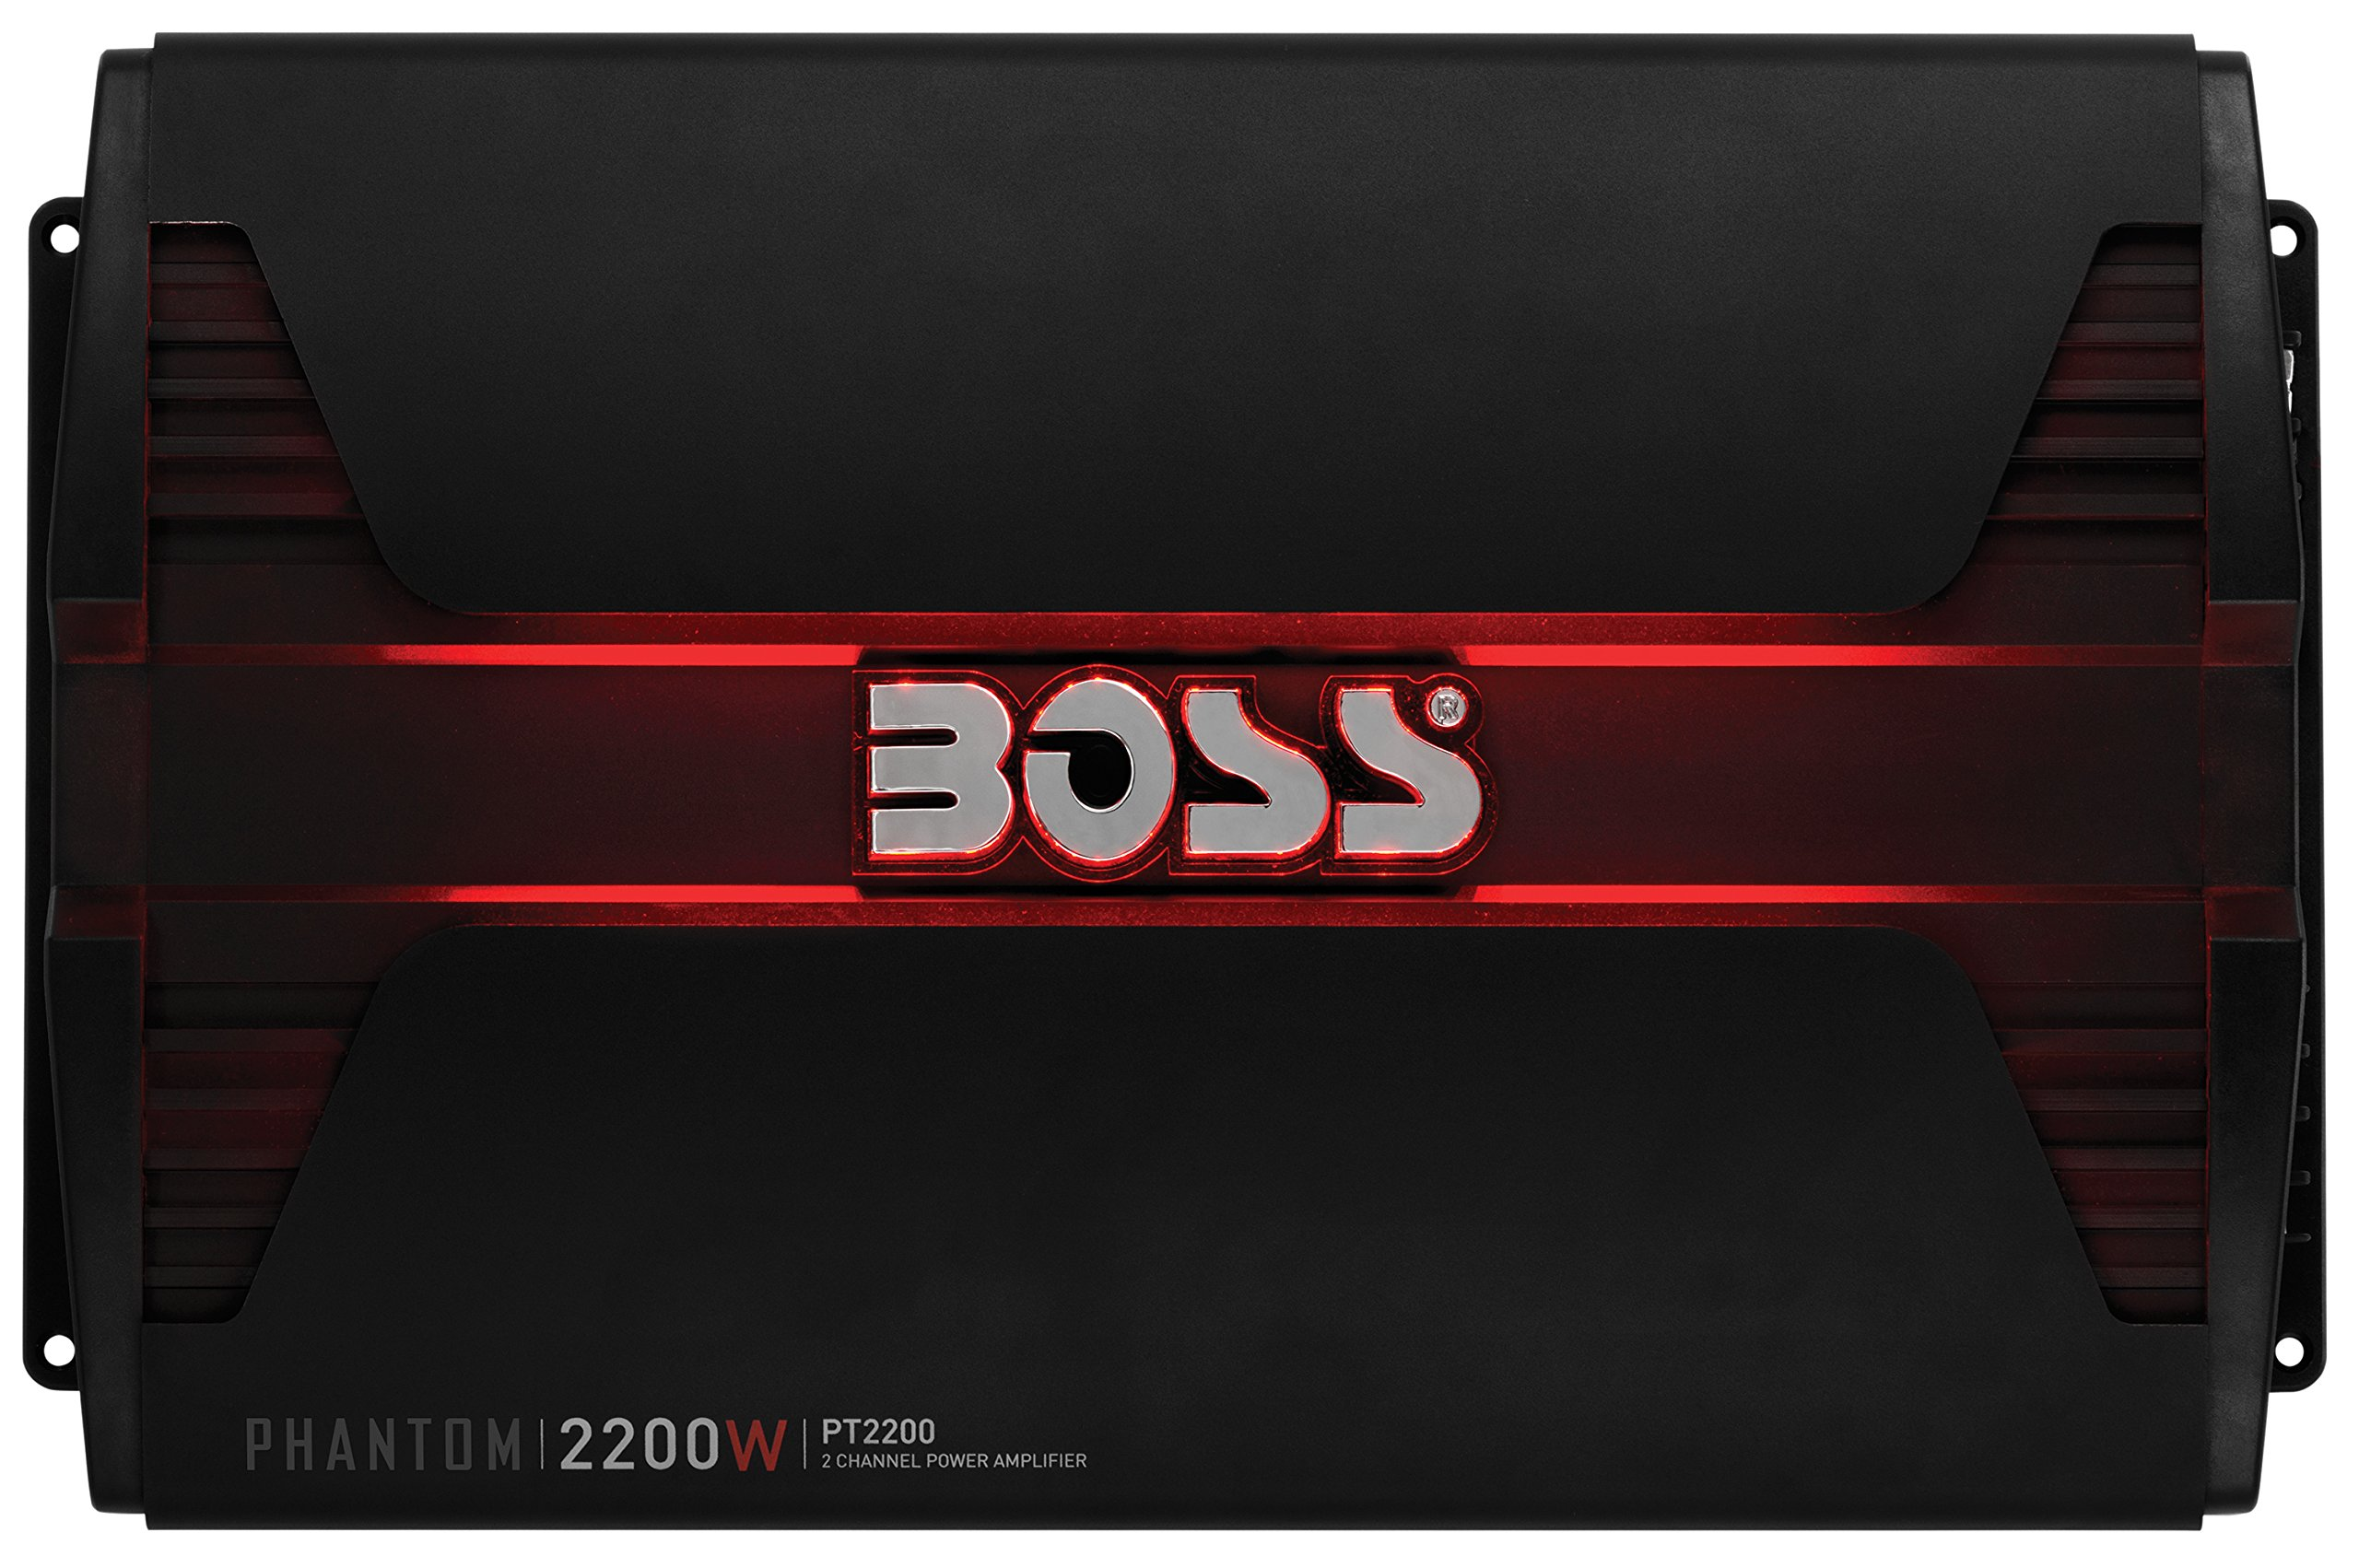 BOSS Audio PT2200 Phantom 2200 Watt, 2 Channel, 2/4 Ohm Stable Class A/B, Full Range, Bridgeable, MOSFET Car Amplifier with Remote Subwoofer Control